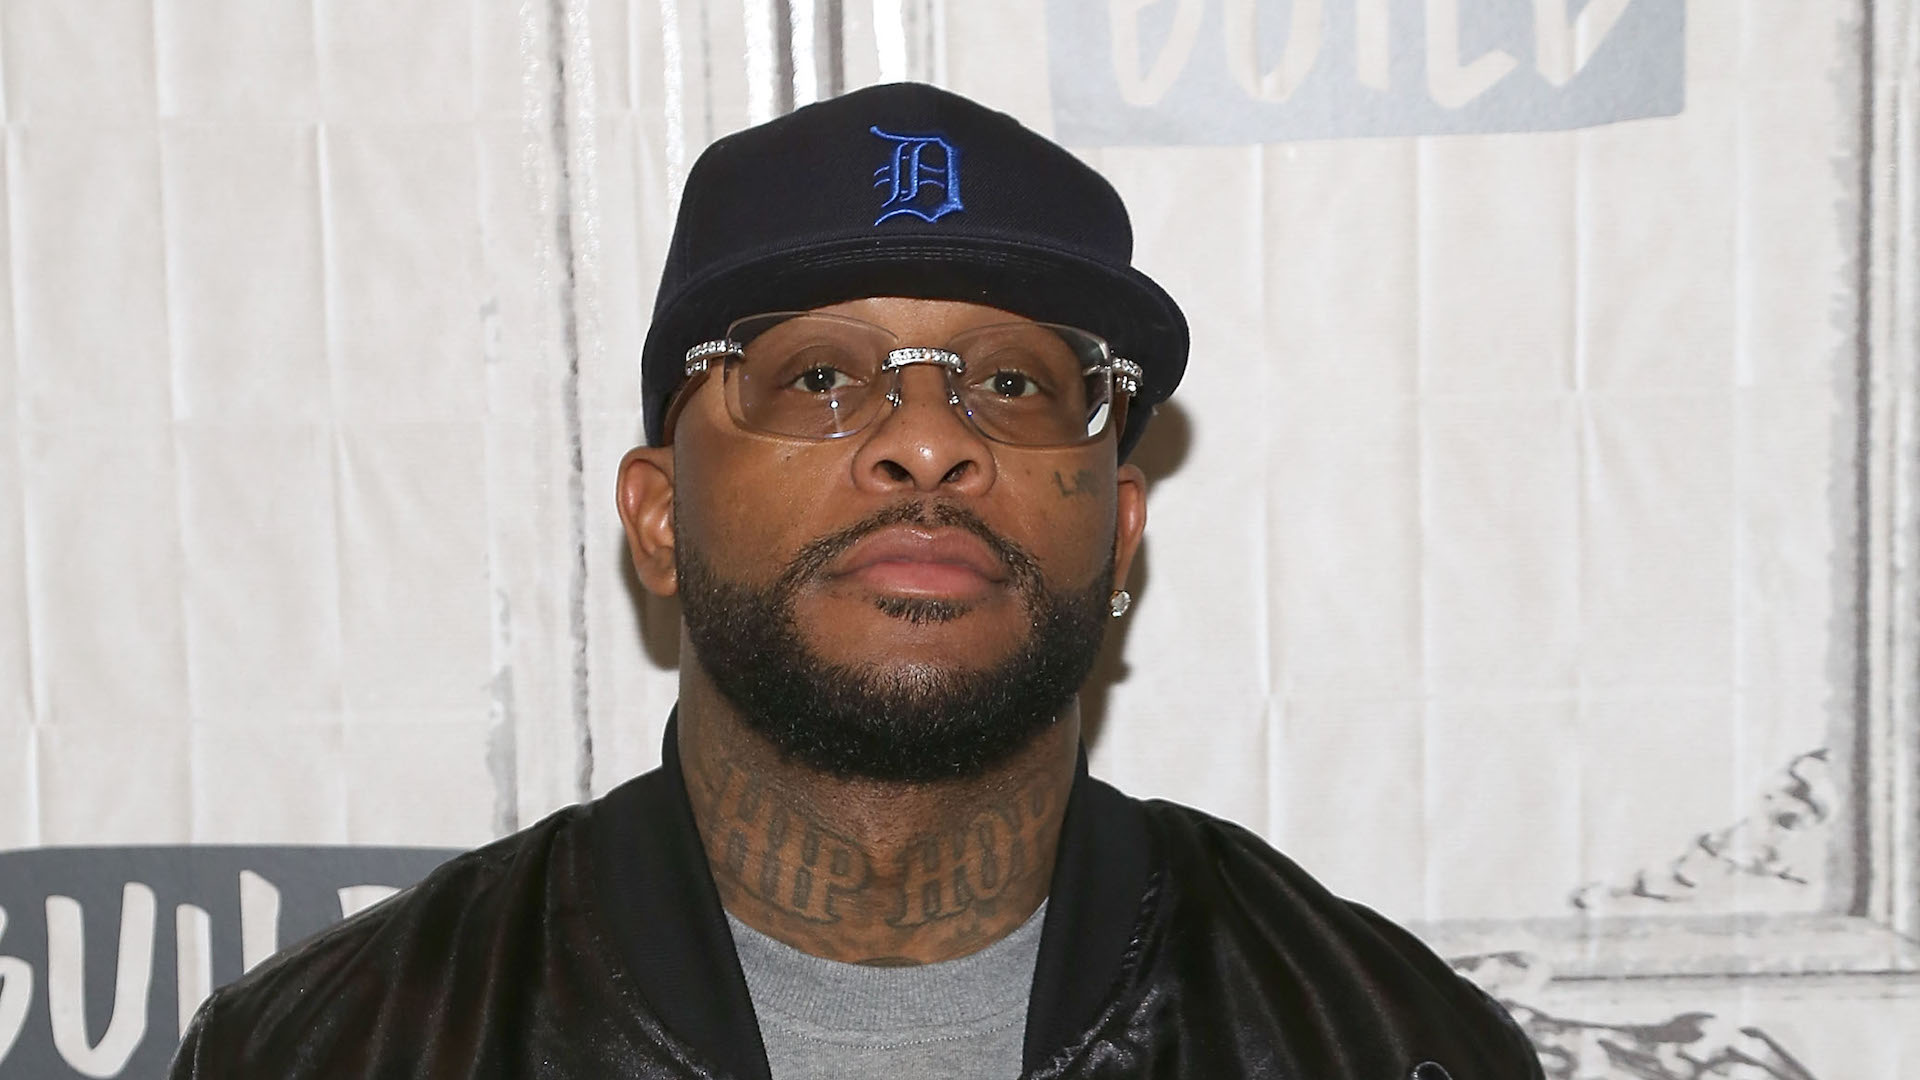 """Royce da 5'9"""" Weighs in on Lil Wayne's Racism Comments: 'Being Famous Early for a Black Person is Crippling'"""